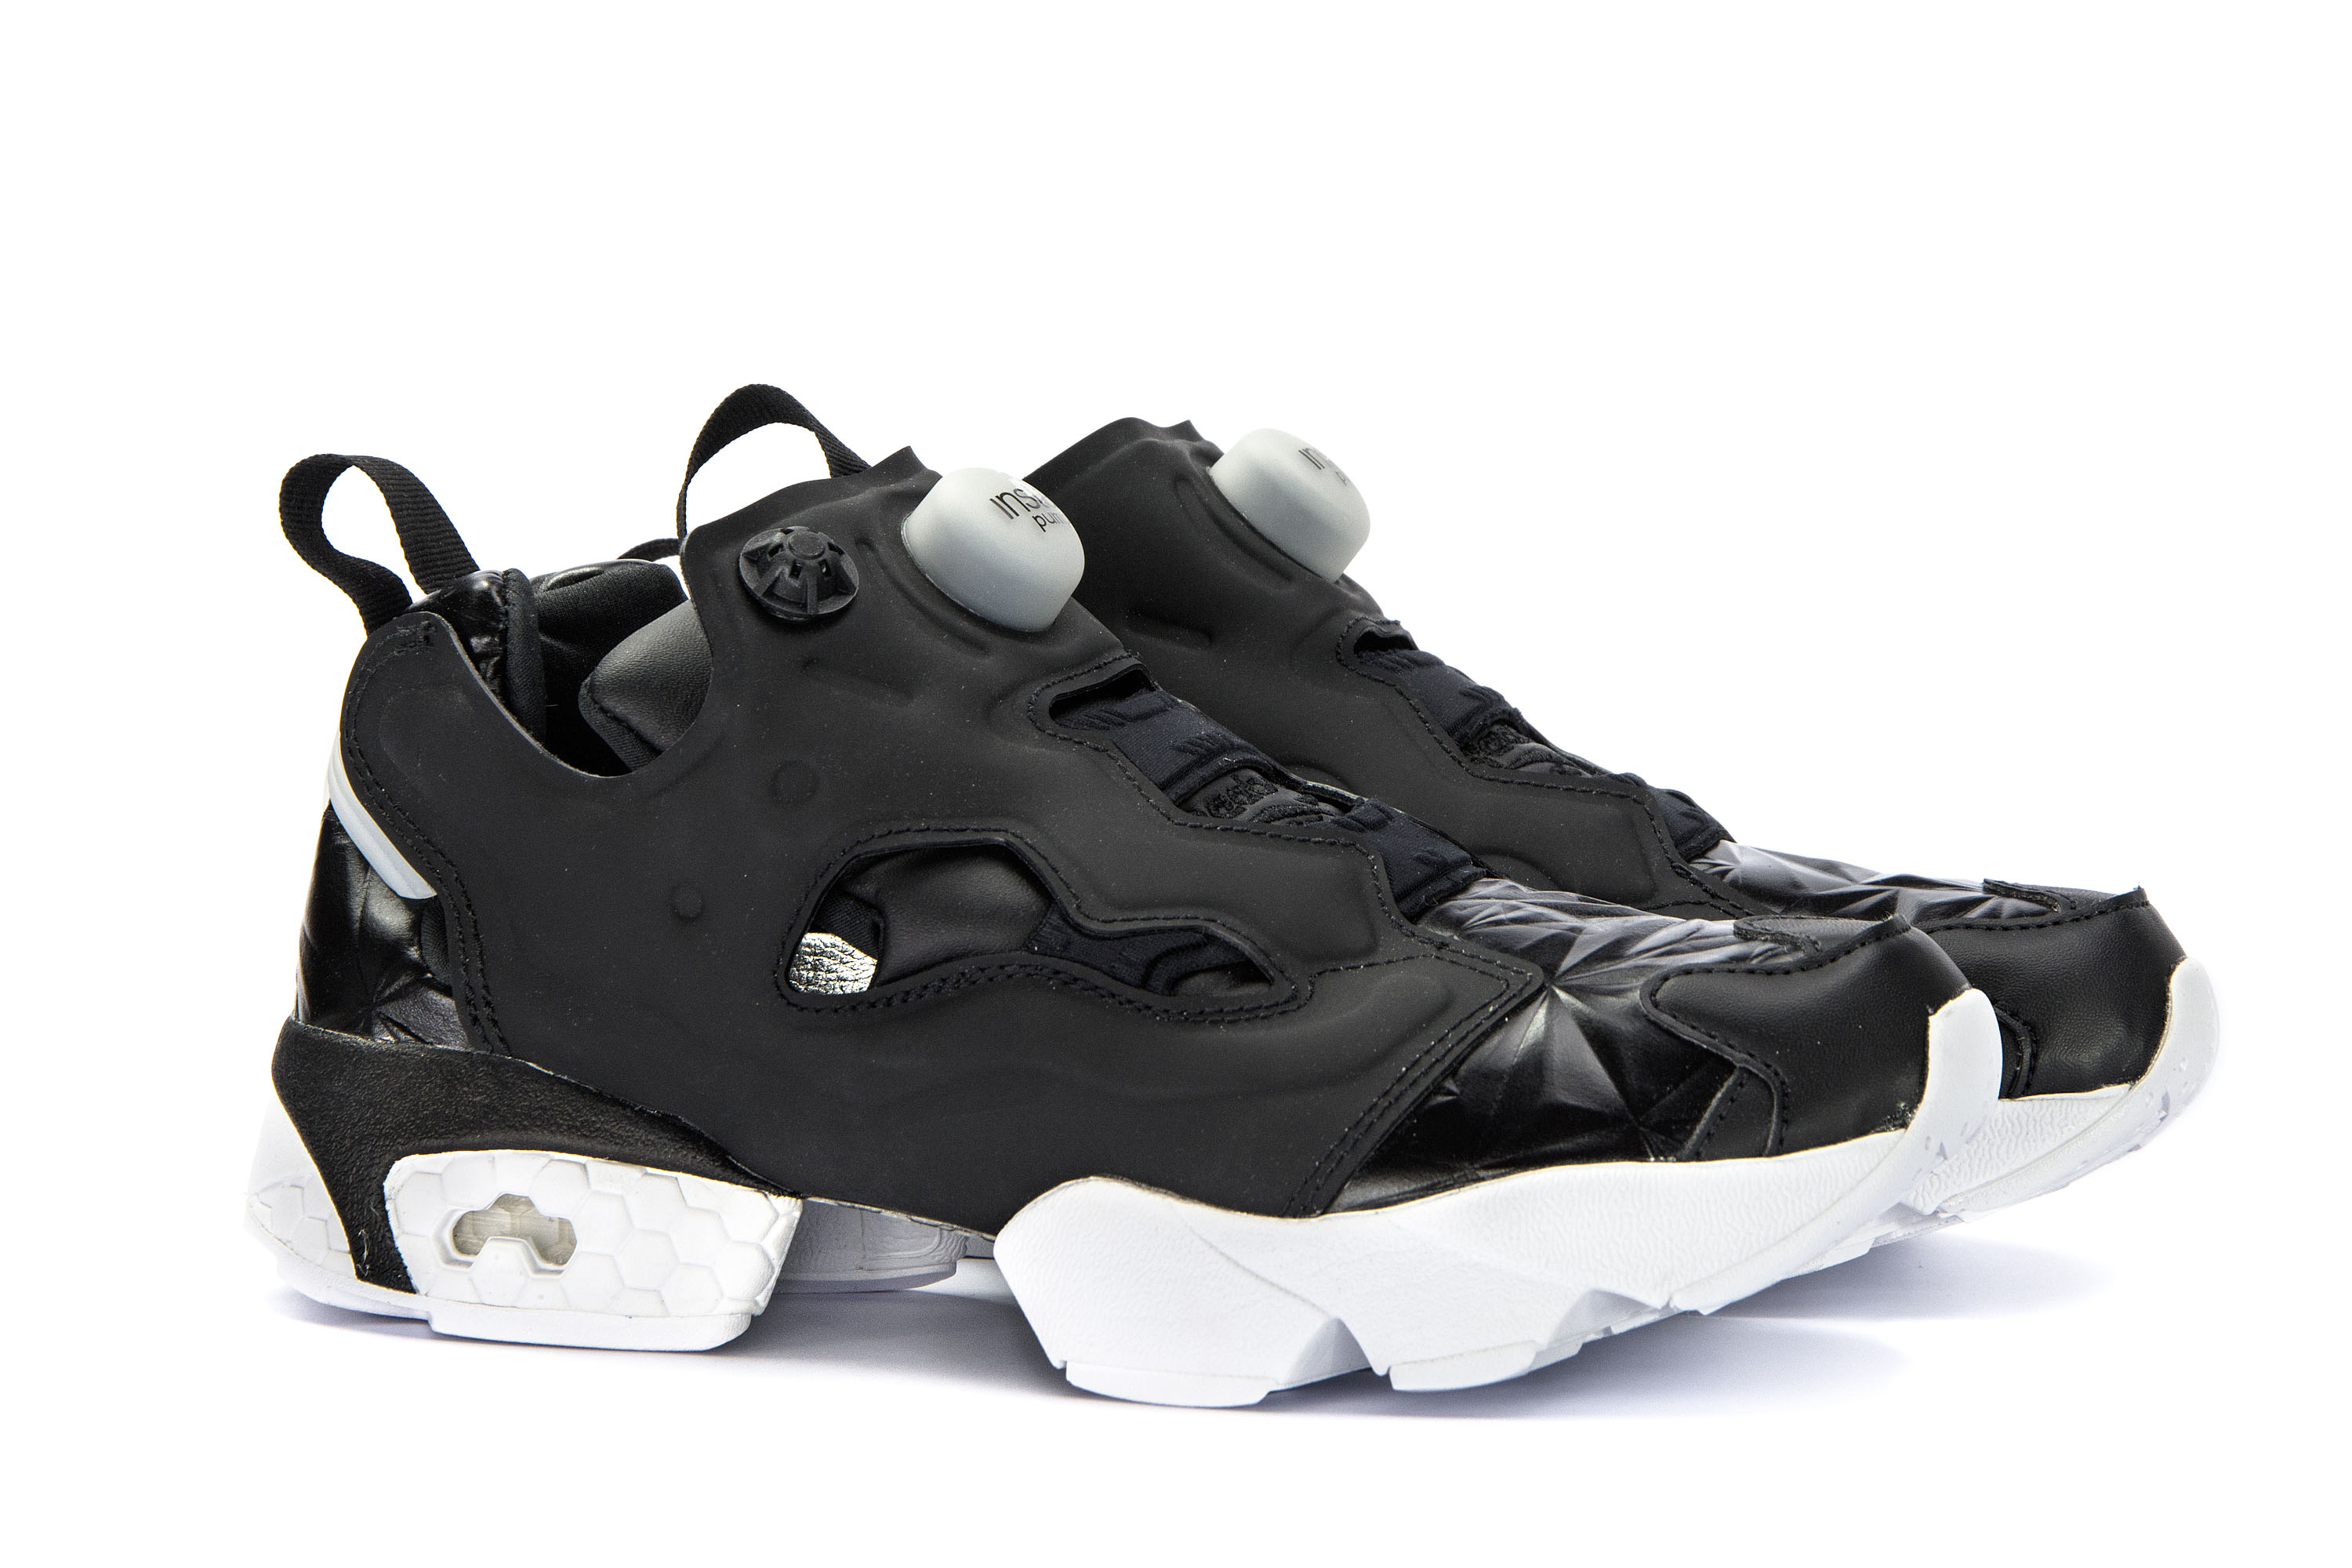 Details about REEBOK Womens Shoes Low Sneakers INSTAPUMP FURY HYPE MET  Black Leather Trainers 9d36e15a2f8